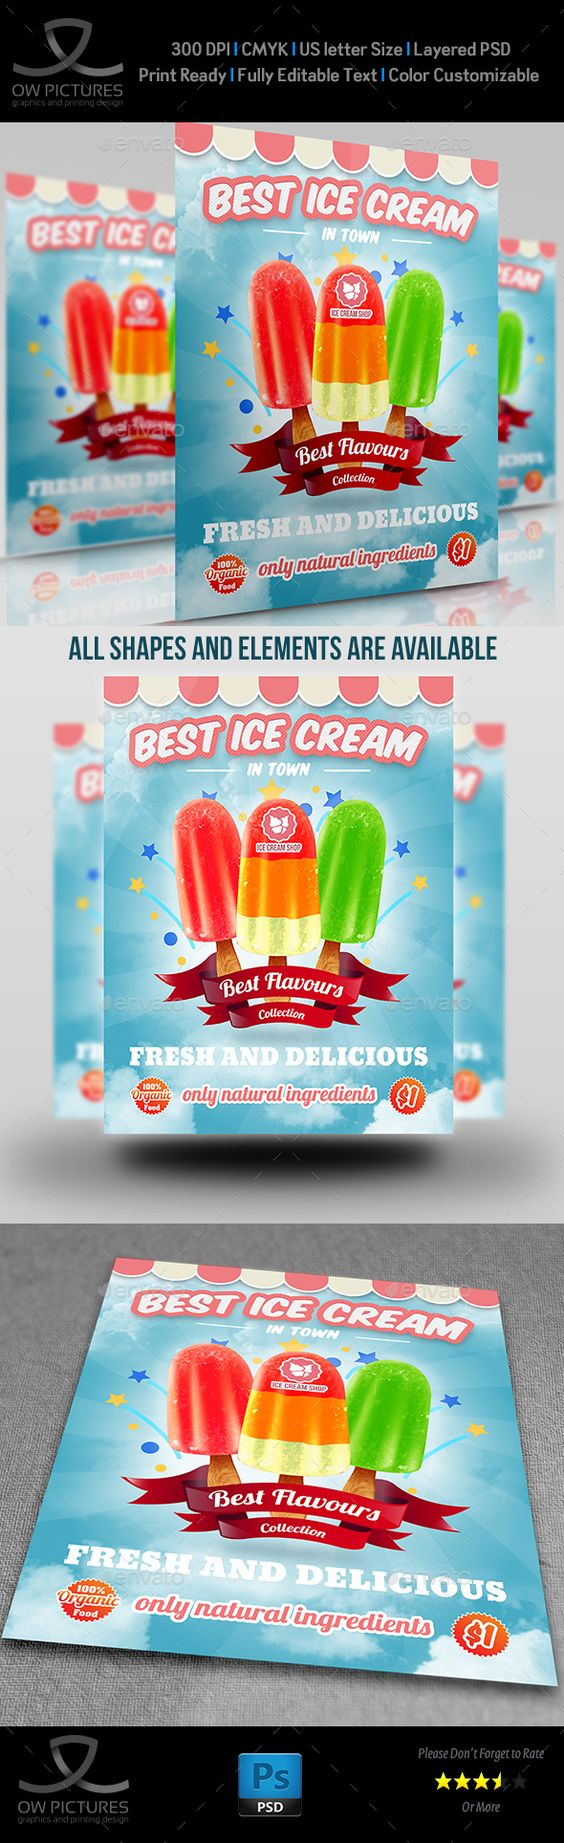 ice cream flyer template vol flyer template flyers and templates ice cream flyer template vol 5 flyers print template psd here graphicriver net item ice cream flyer template vol5 16557754 ref yinkira